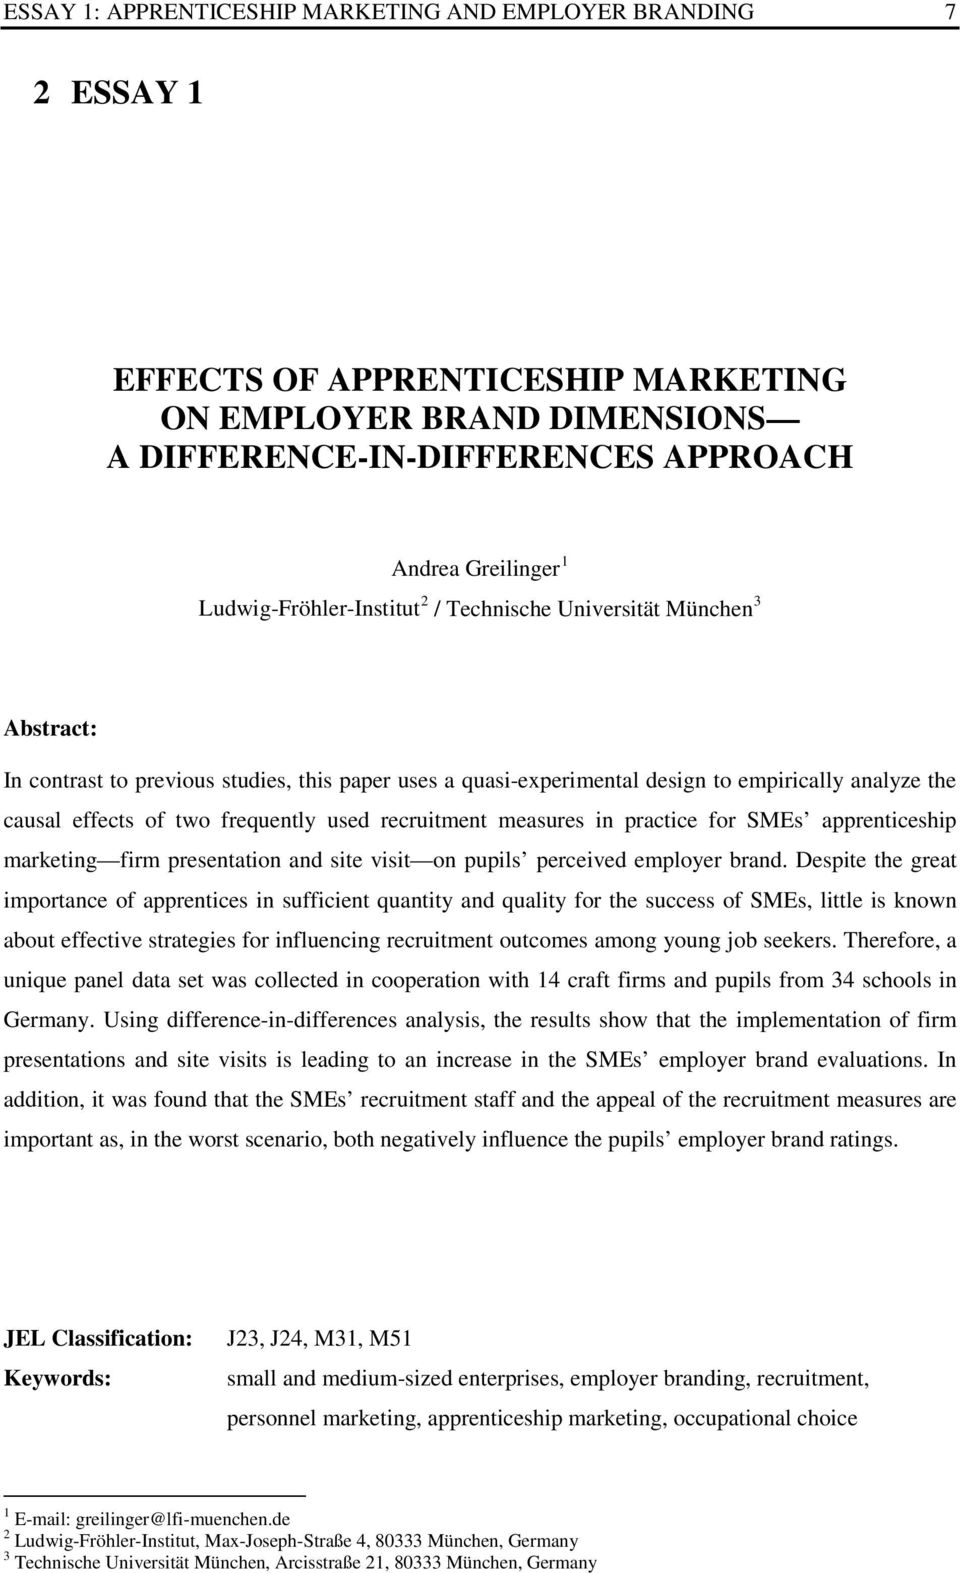 design to empirically analyze the causal effects of two frequently used recruitment measures in practice for SMEs apprenticeship marketing firm presentation and site visit on pupils perceived